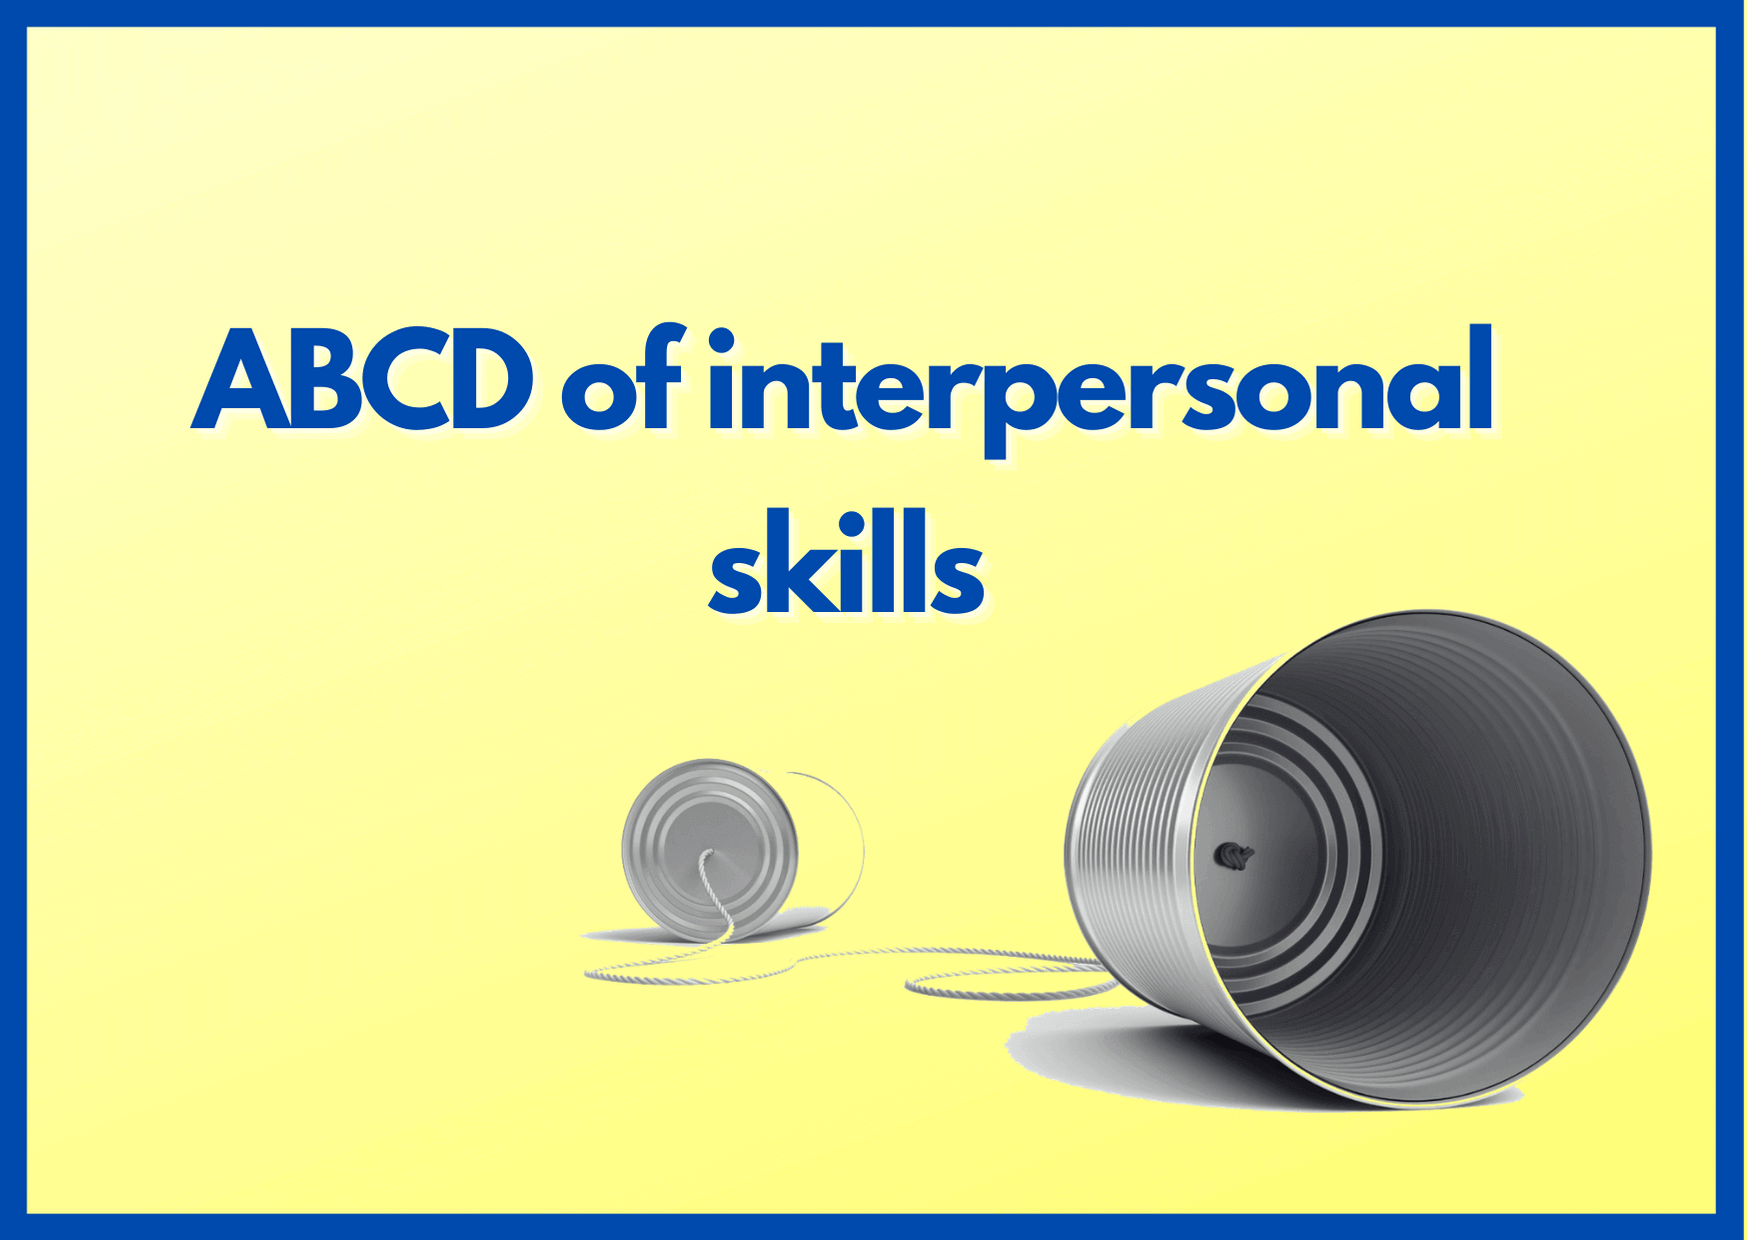 ABCD-of-interpersonal-skills